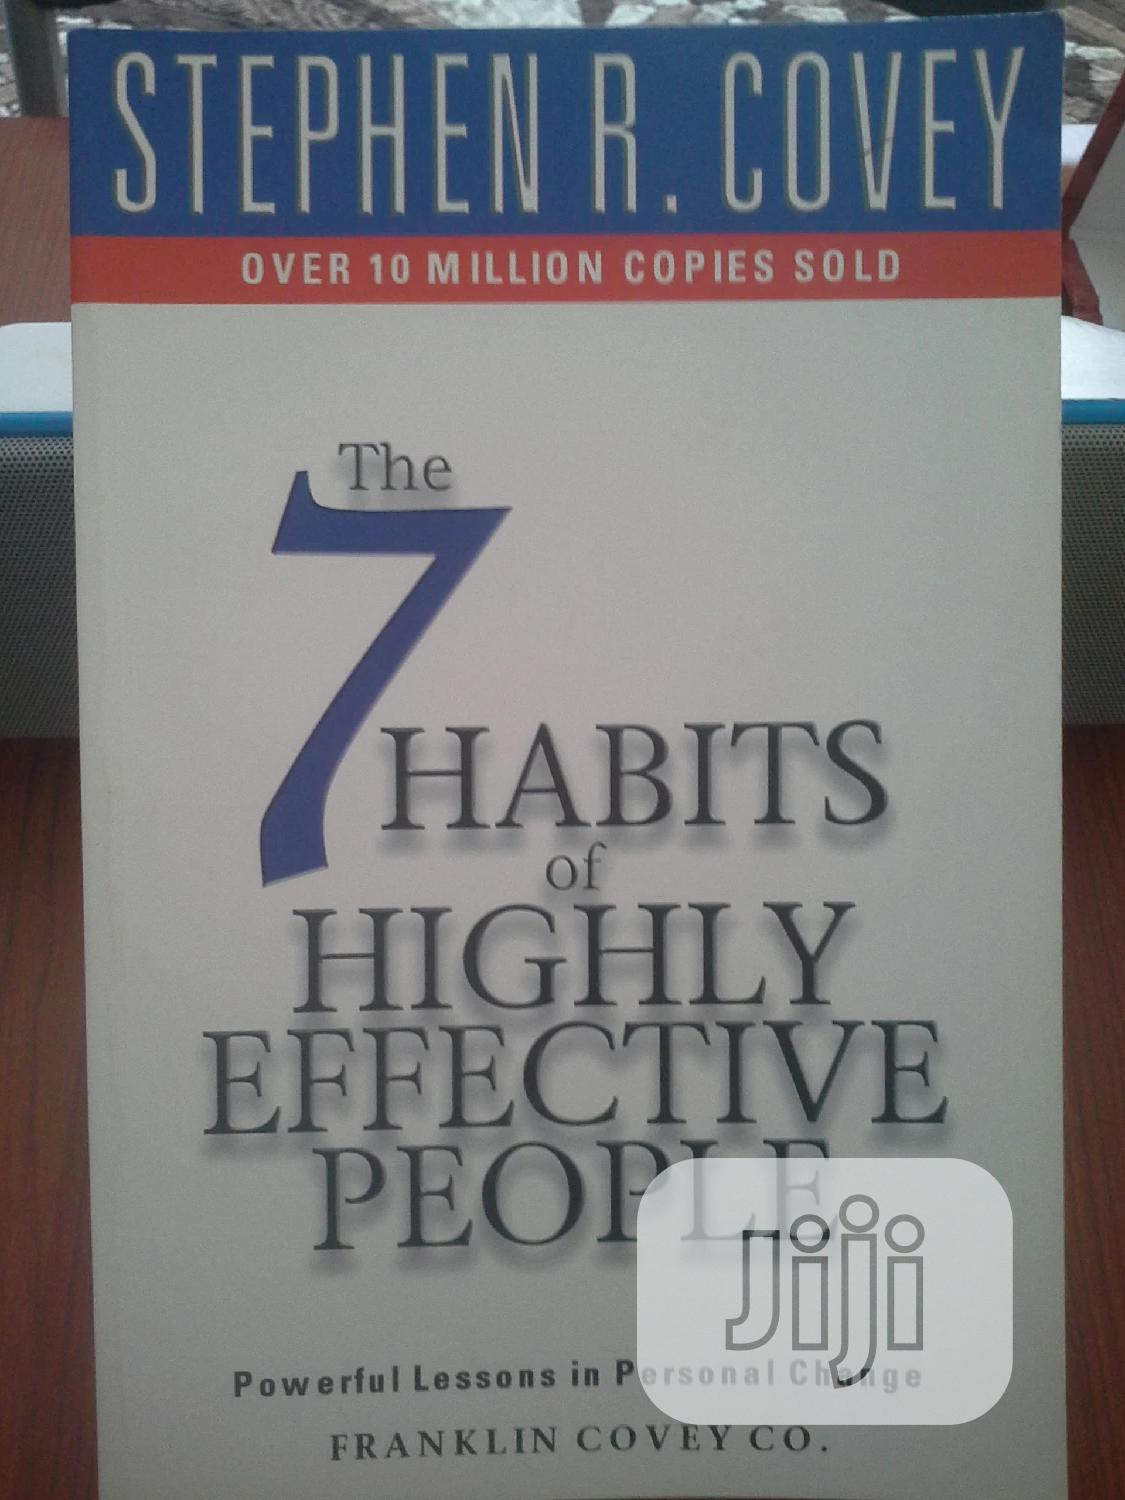 Archive: The 7 Habits of Highly Effective People